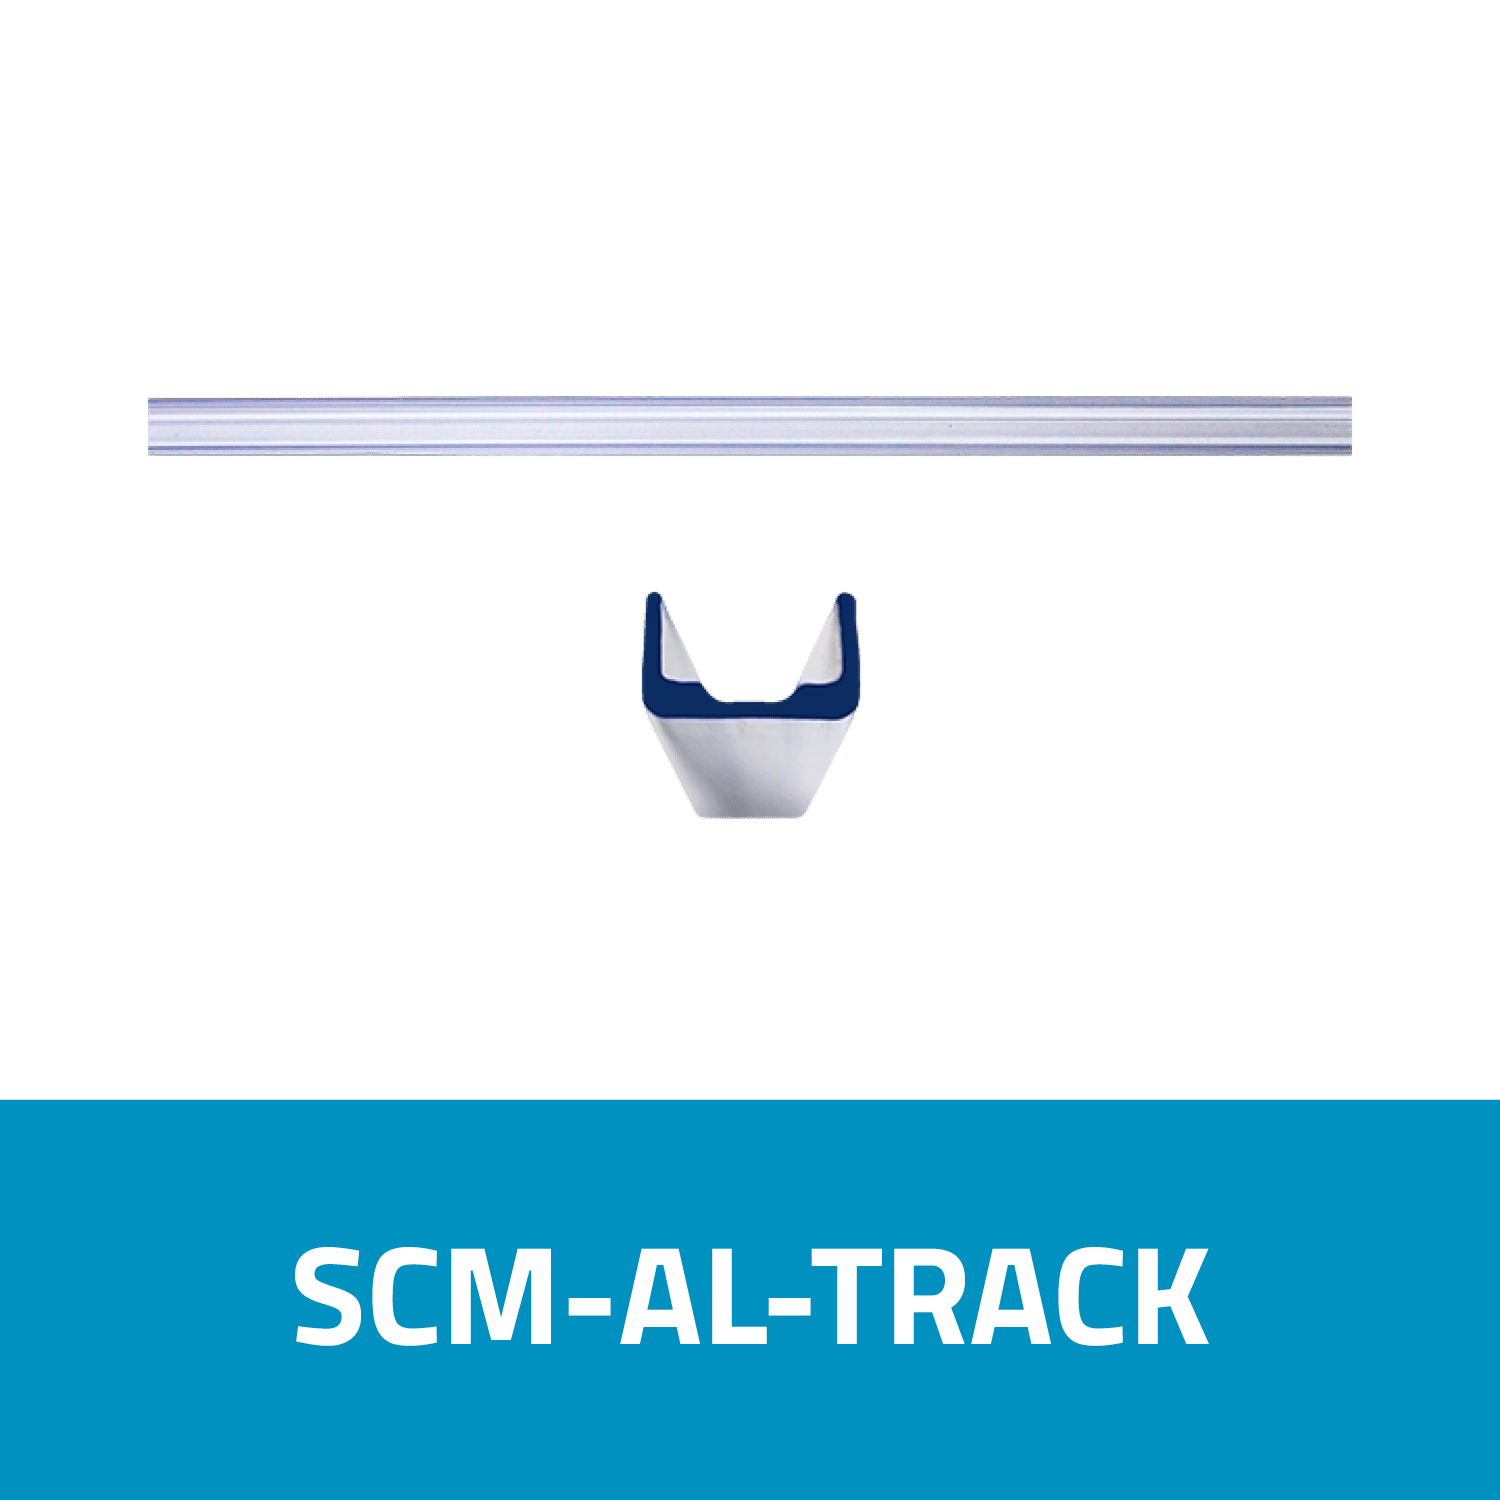 Shadow-Caster Marine LED Lighting SCM-AL-TRACK